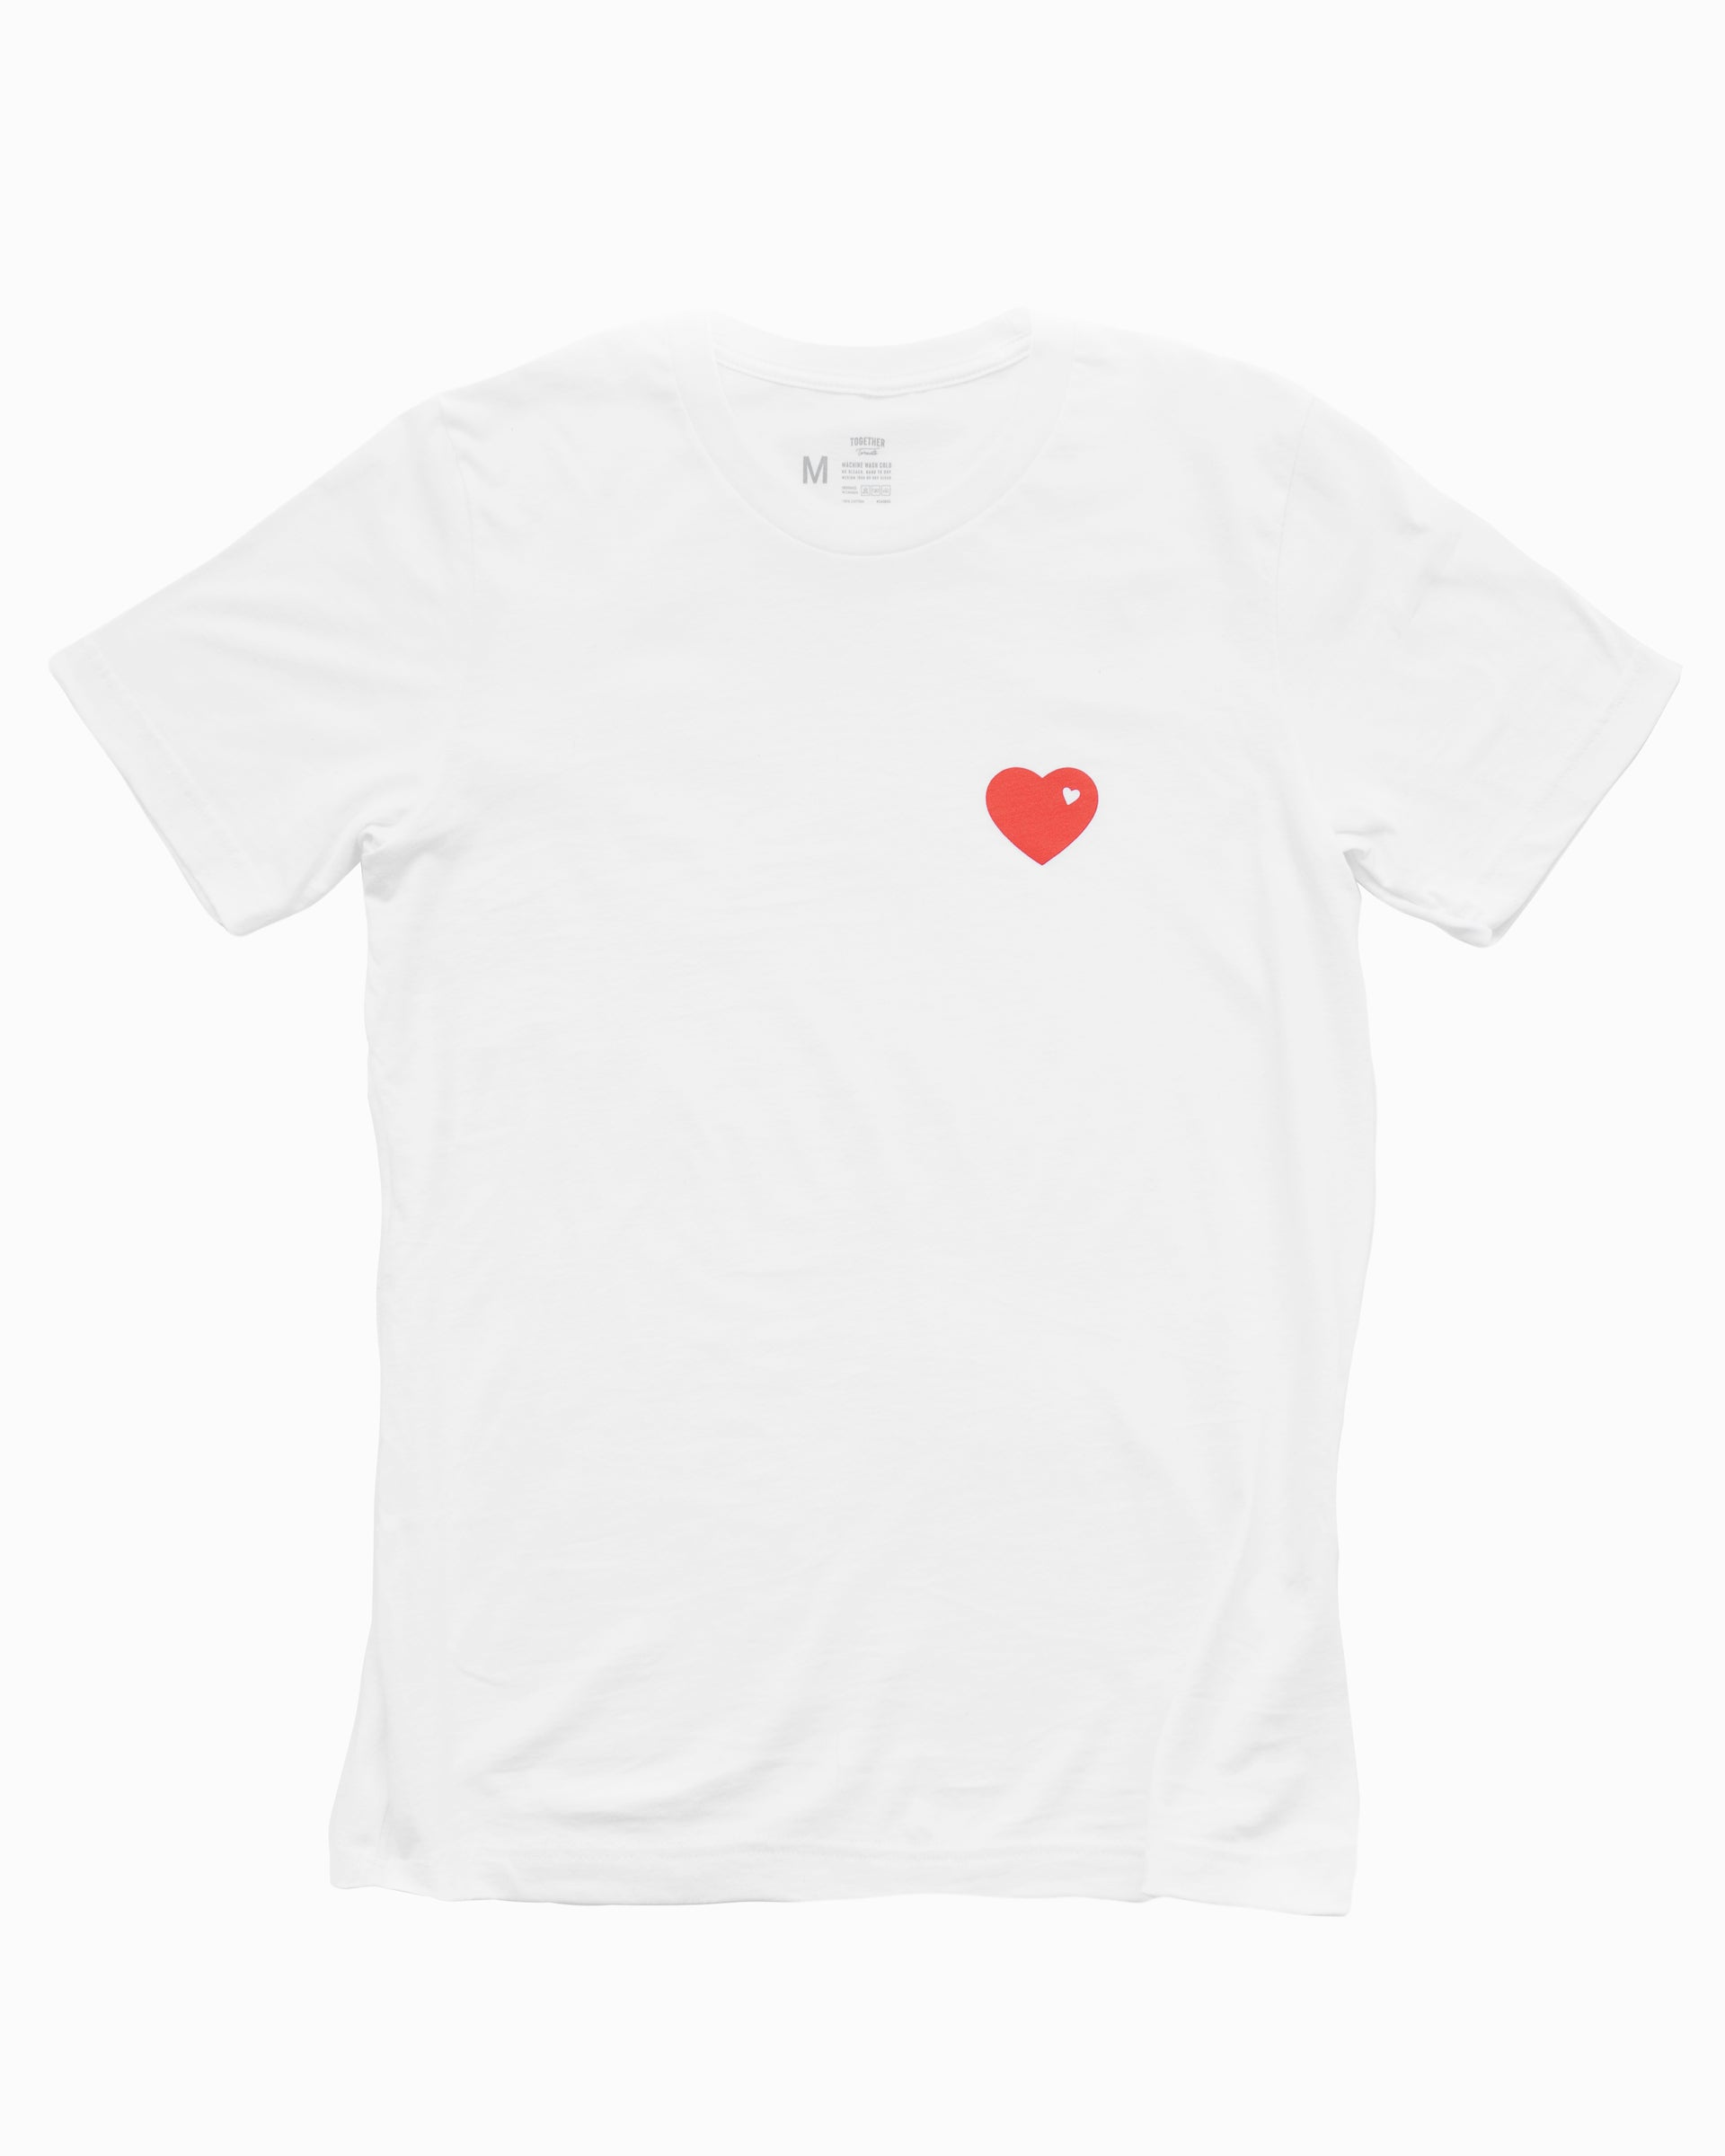 Together Love - Unisex T-Shirt